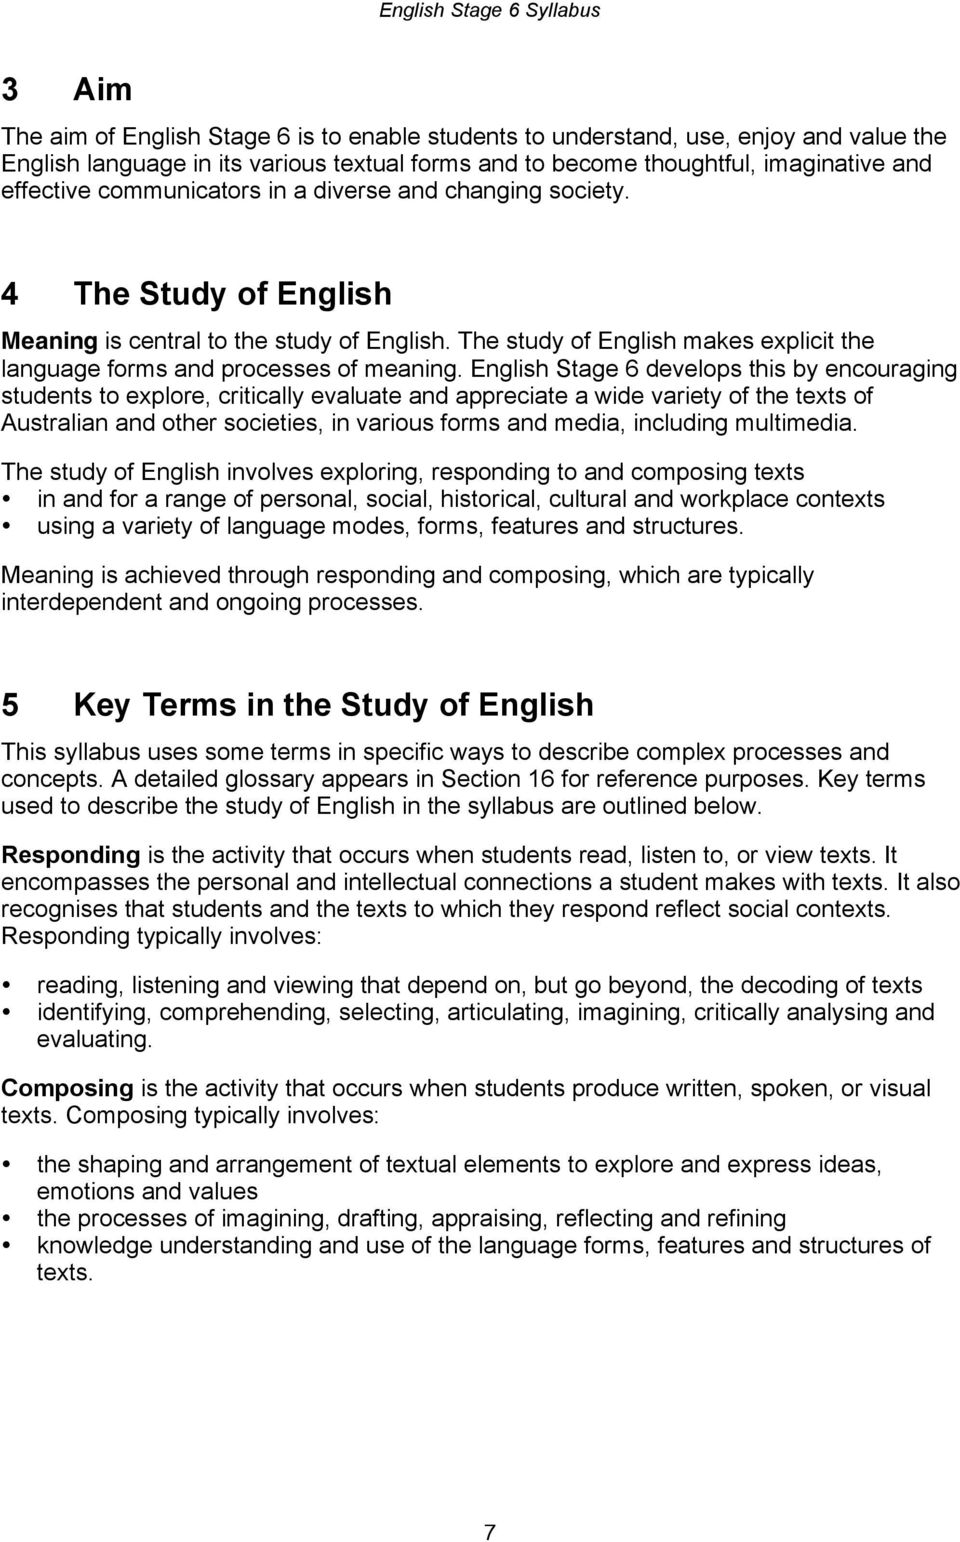 The study of English makes explicit the language forms and processes of meaning.